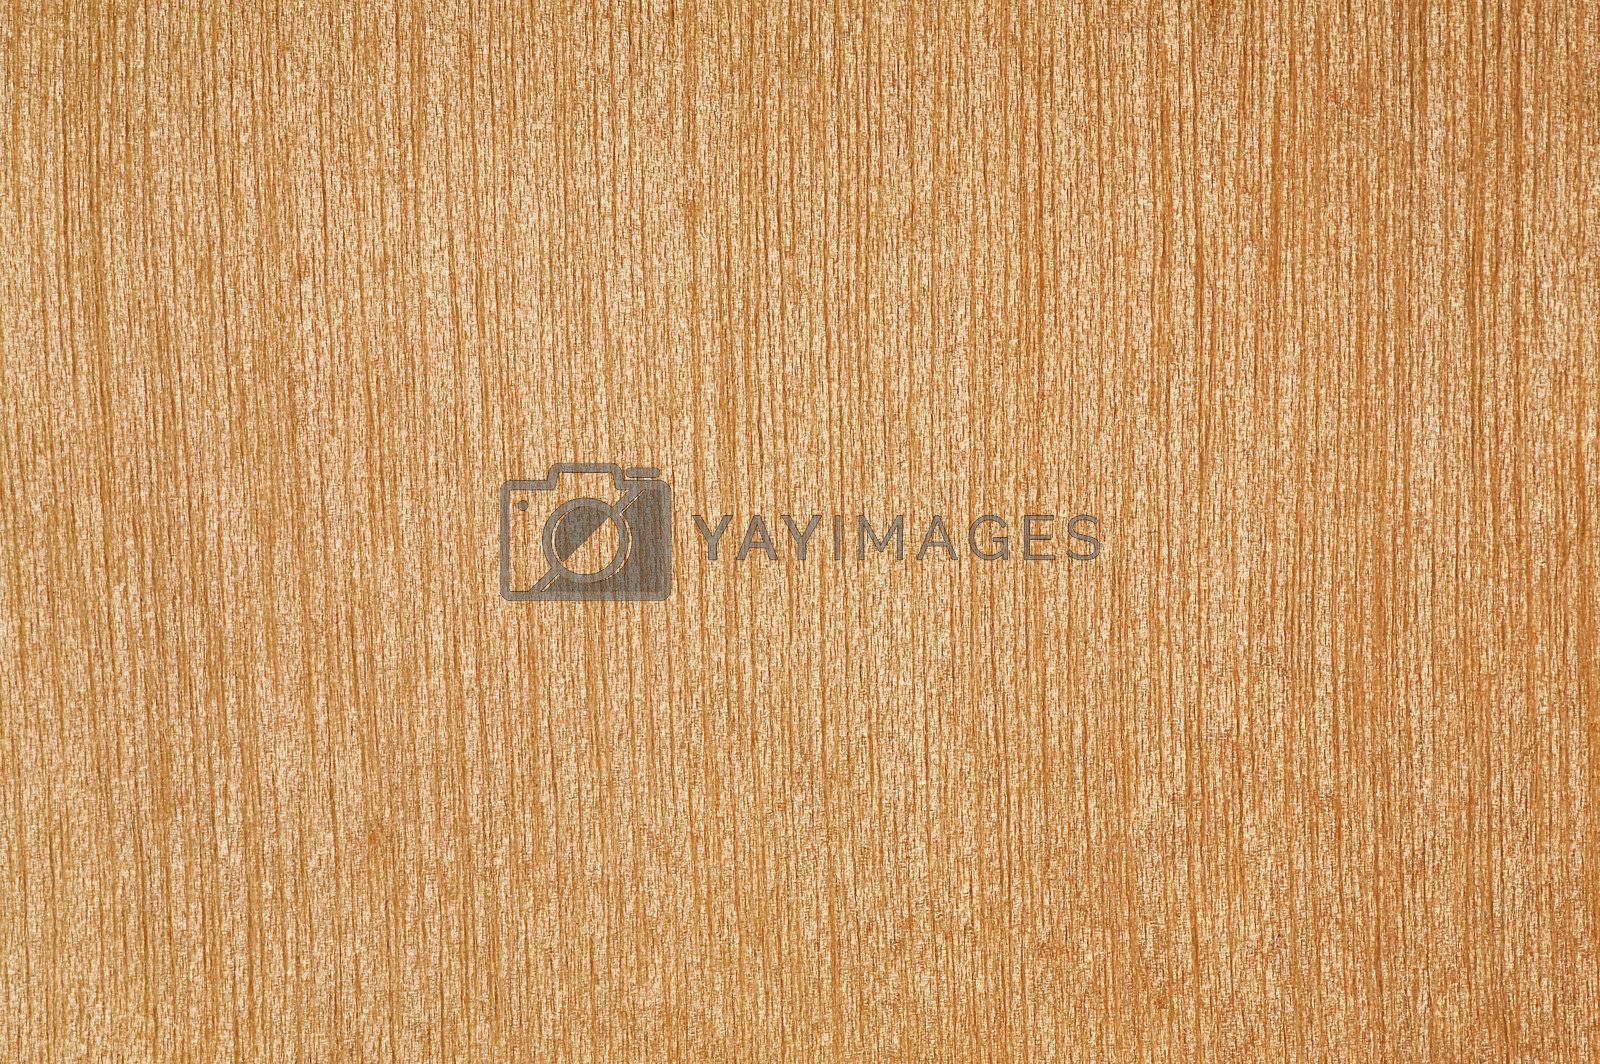 Abstract light yellow wood texture